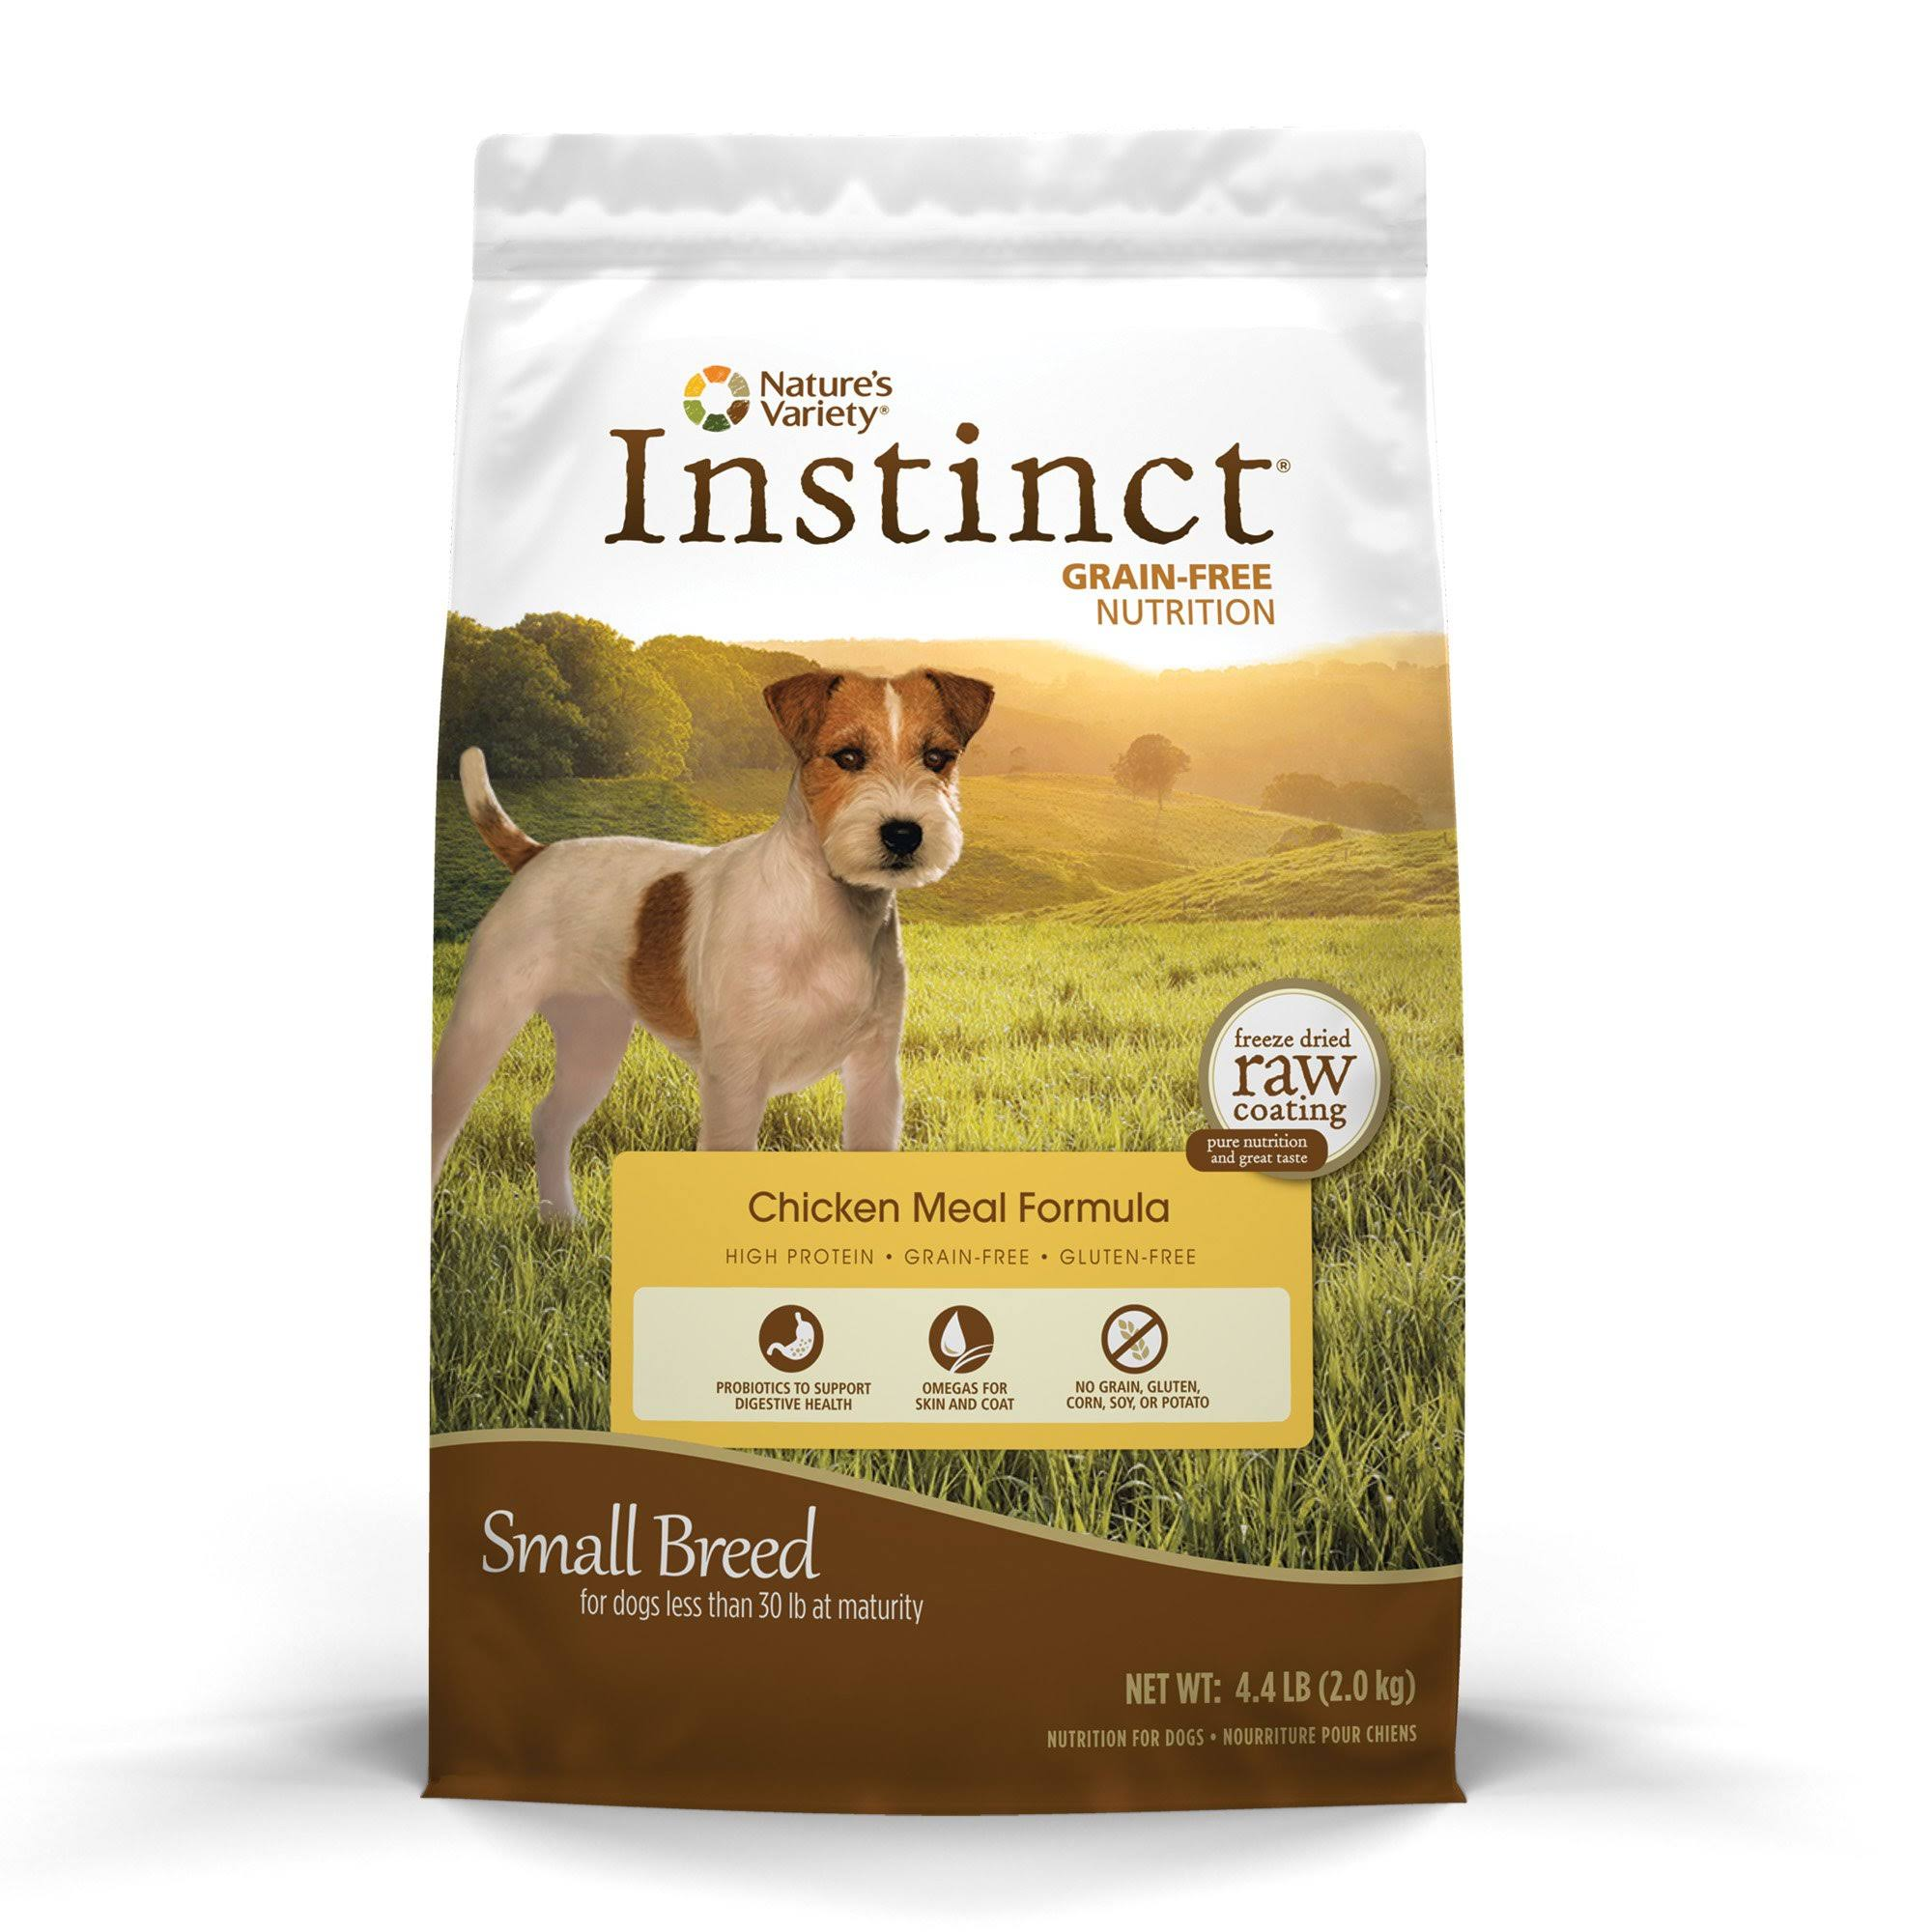 Natures Variety Instinct Dog Food - Grain Free, Chicken Meal Formula